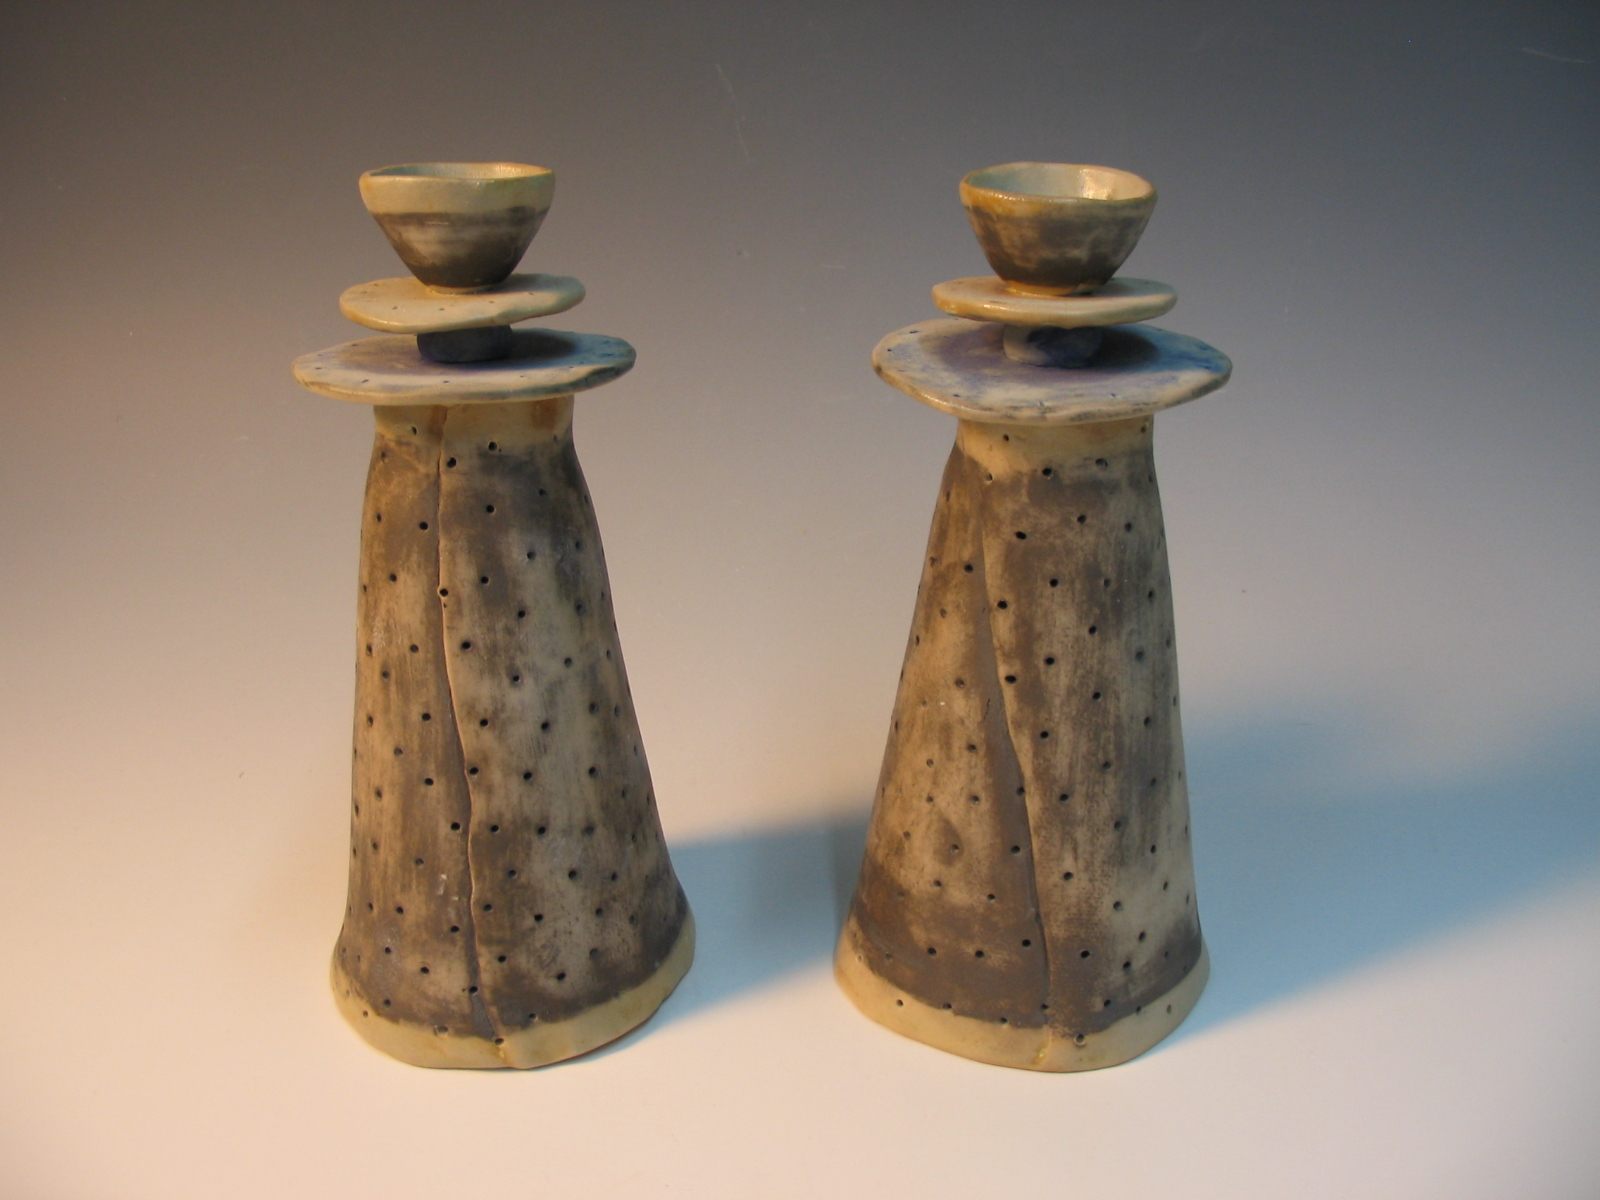 Candle sticks - porcelain